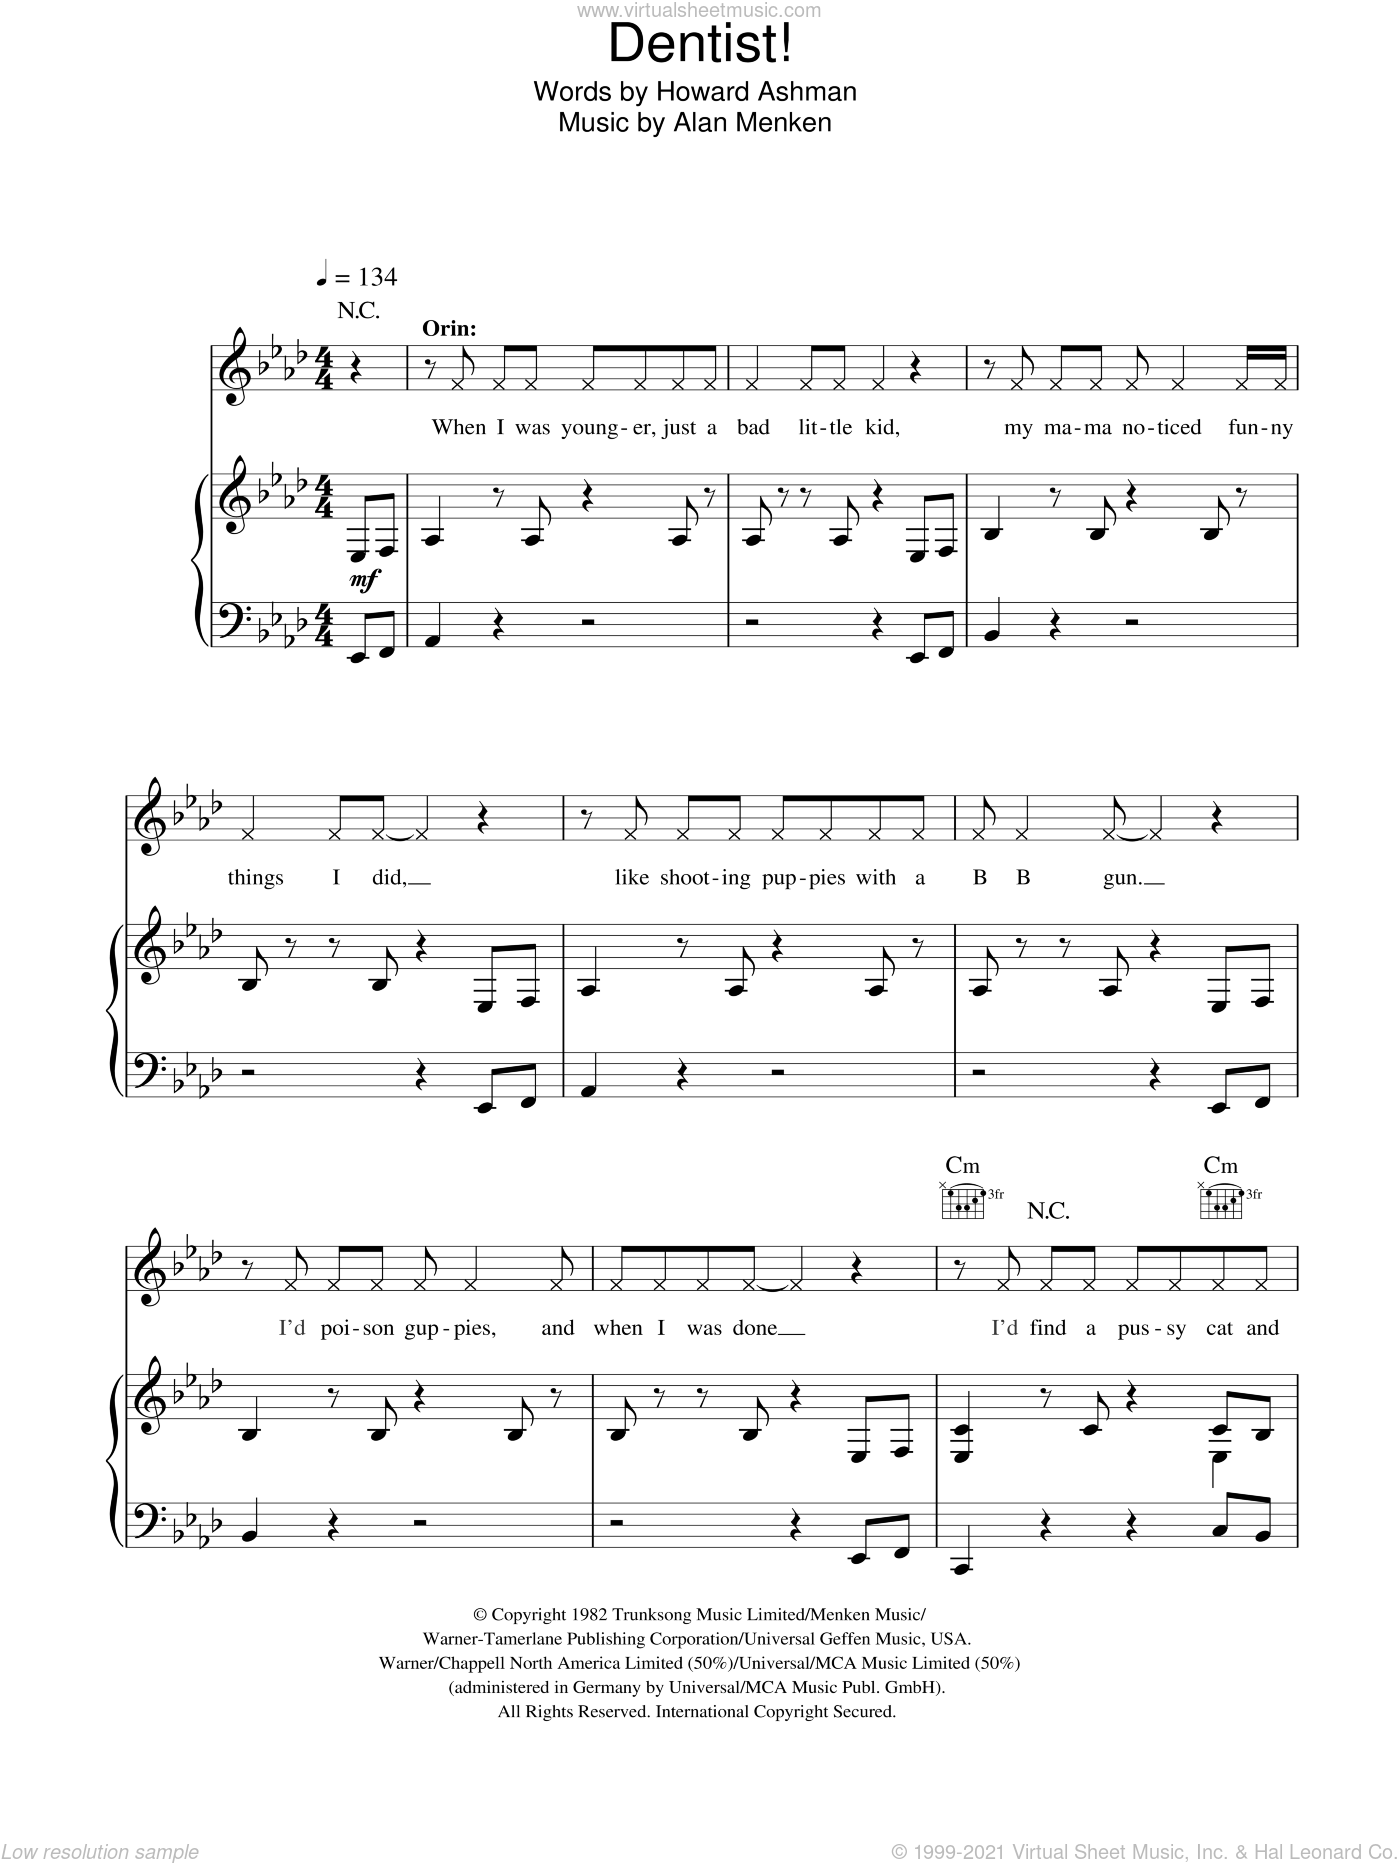 Dentist! sheet music for voice, piano or guitar by Alan Menken